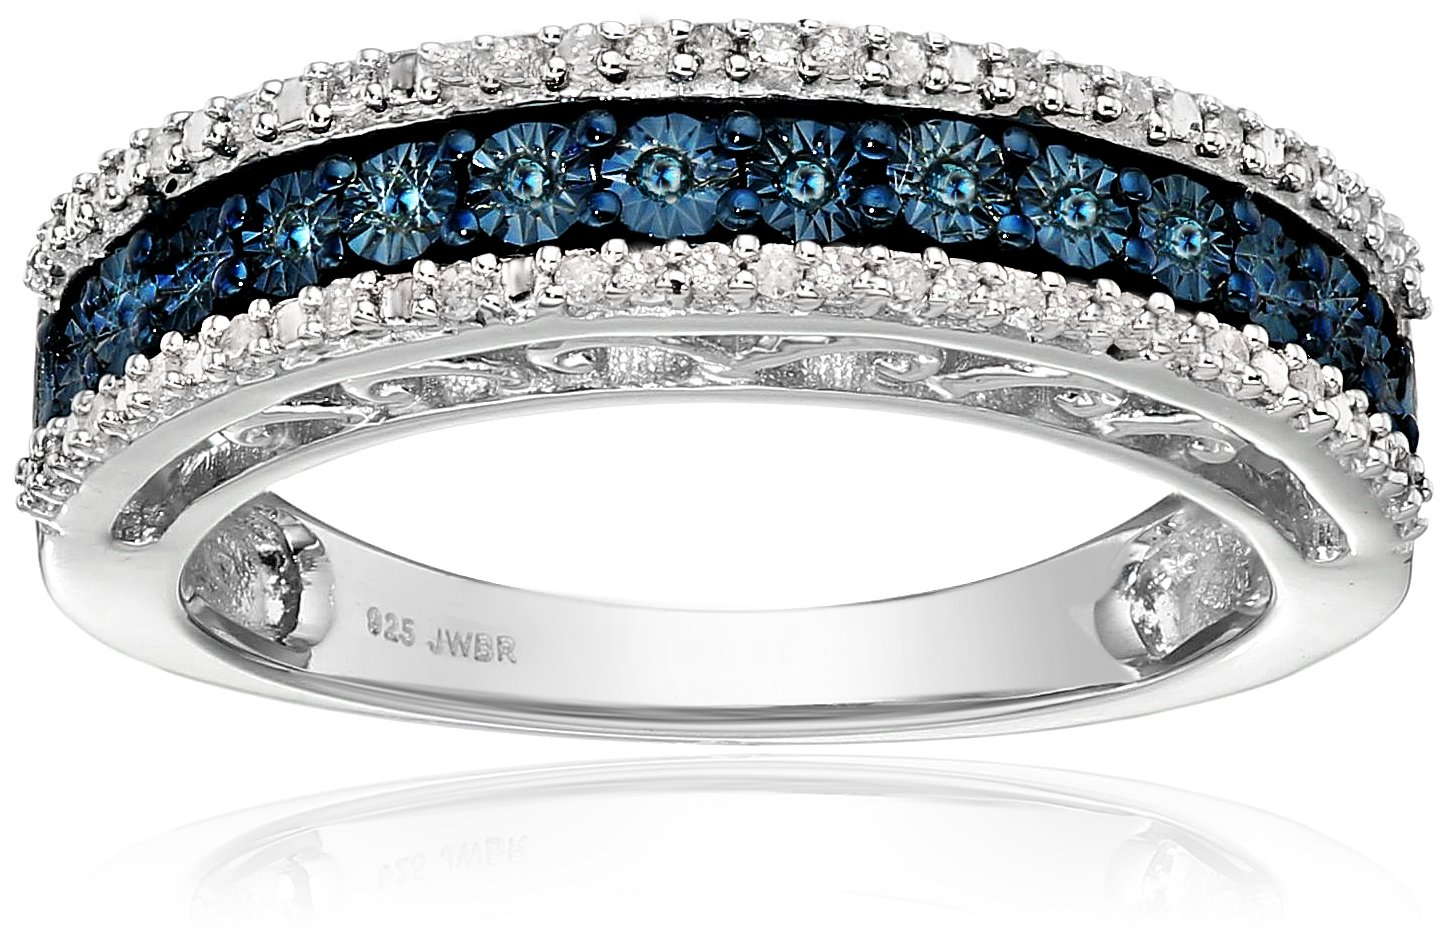 Jewelili Sterling Silver Blue and White Diamond Anniversary Ring (1/10 cttw,), Size 6 by Jewelili